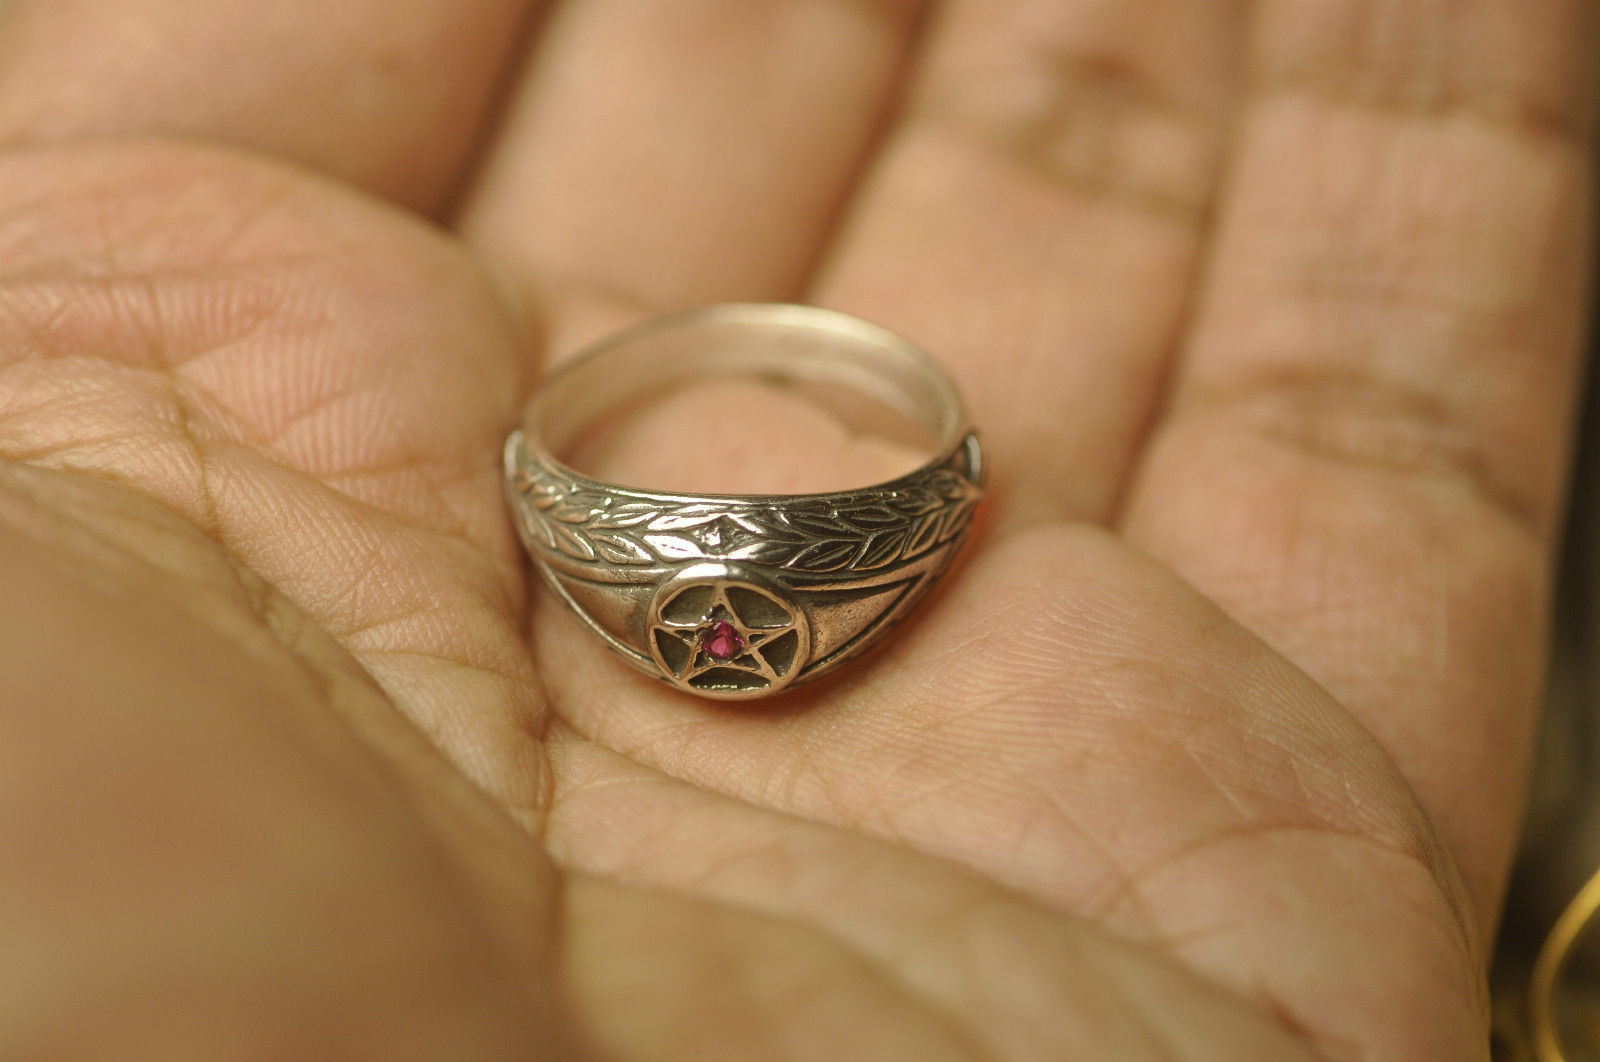 Celtic Absorb Evil Eye & convert to positive ring Pentagram 925 Sterling Silver